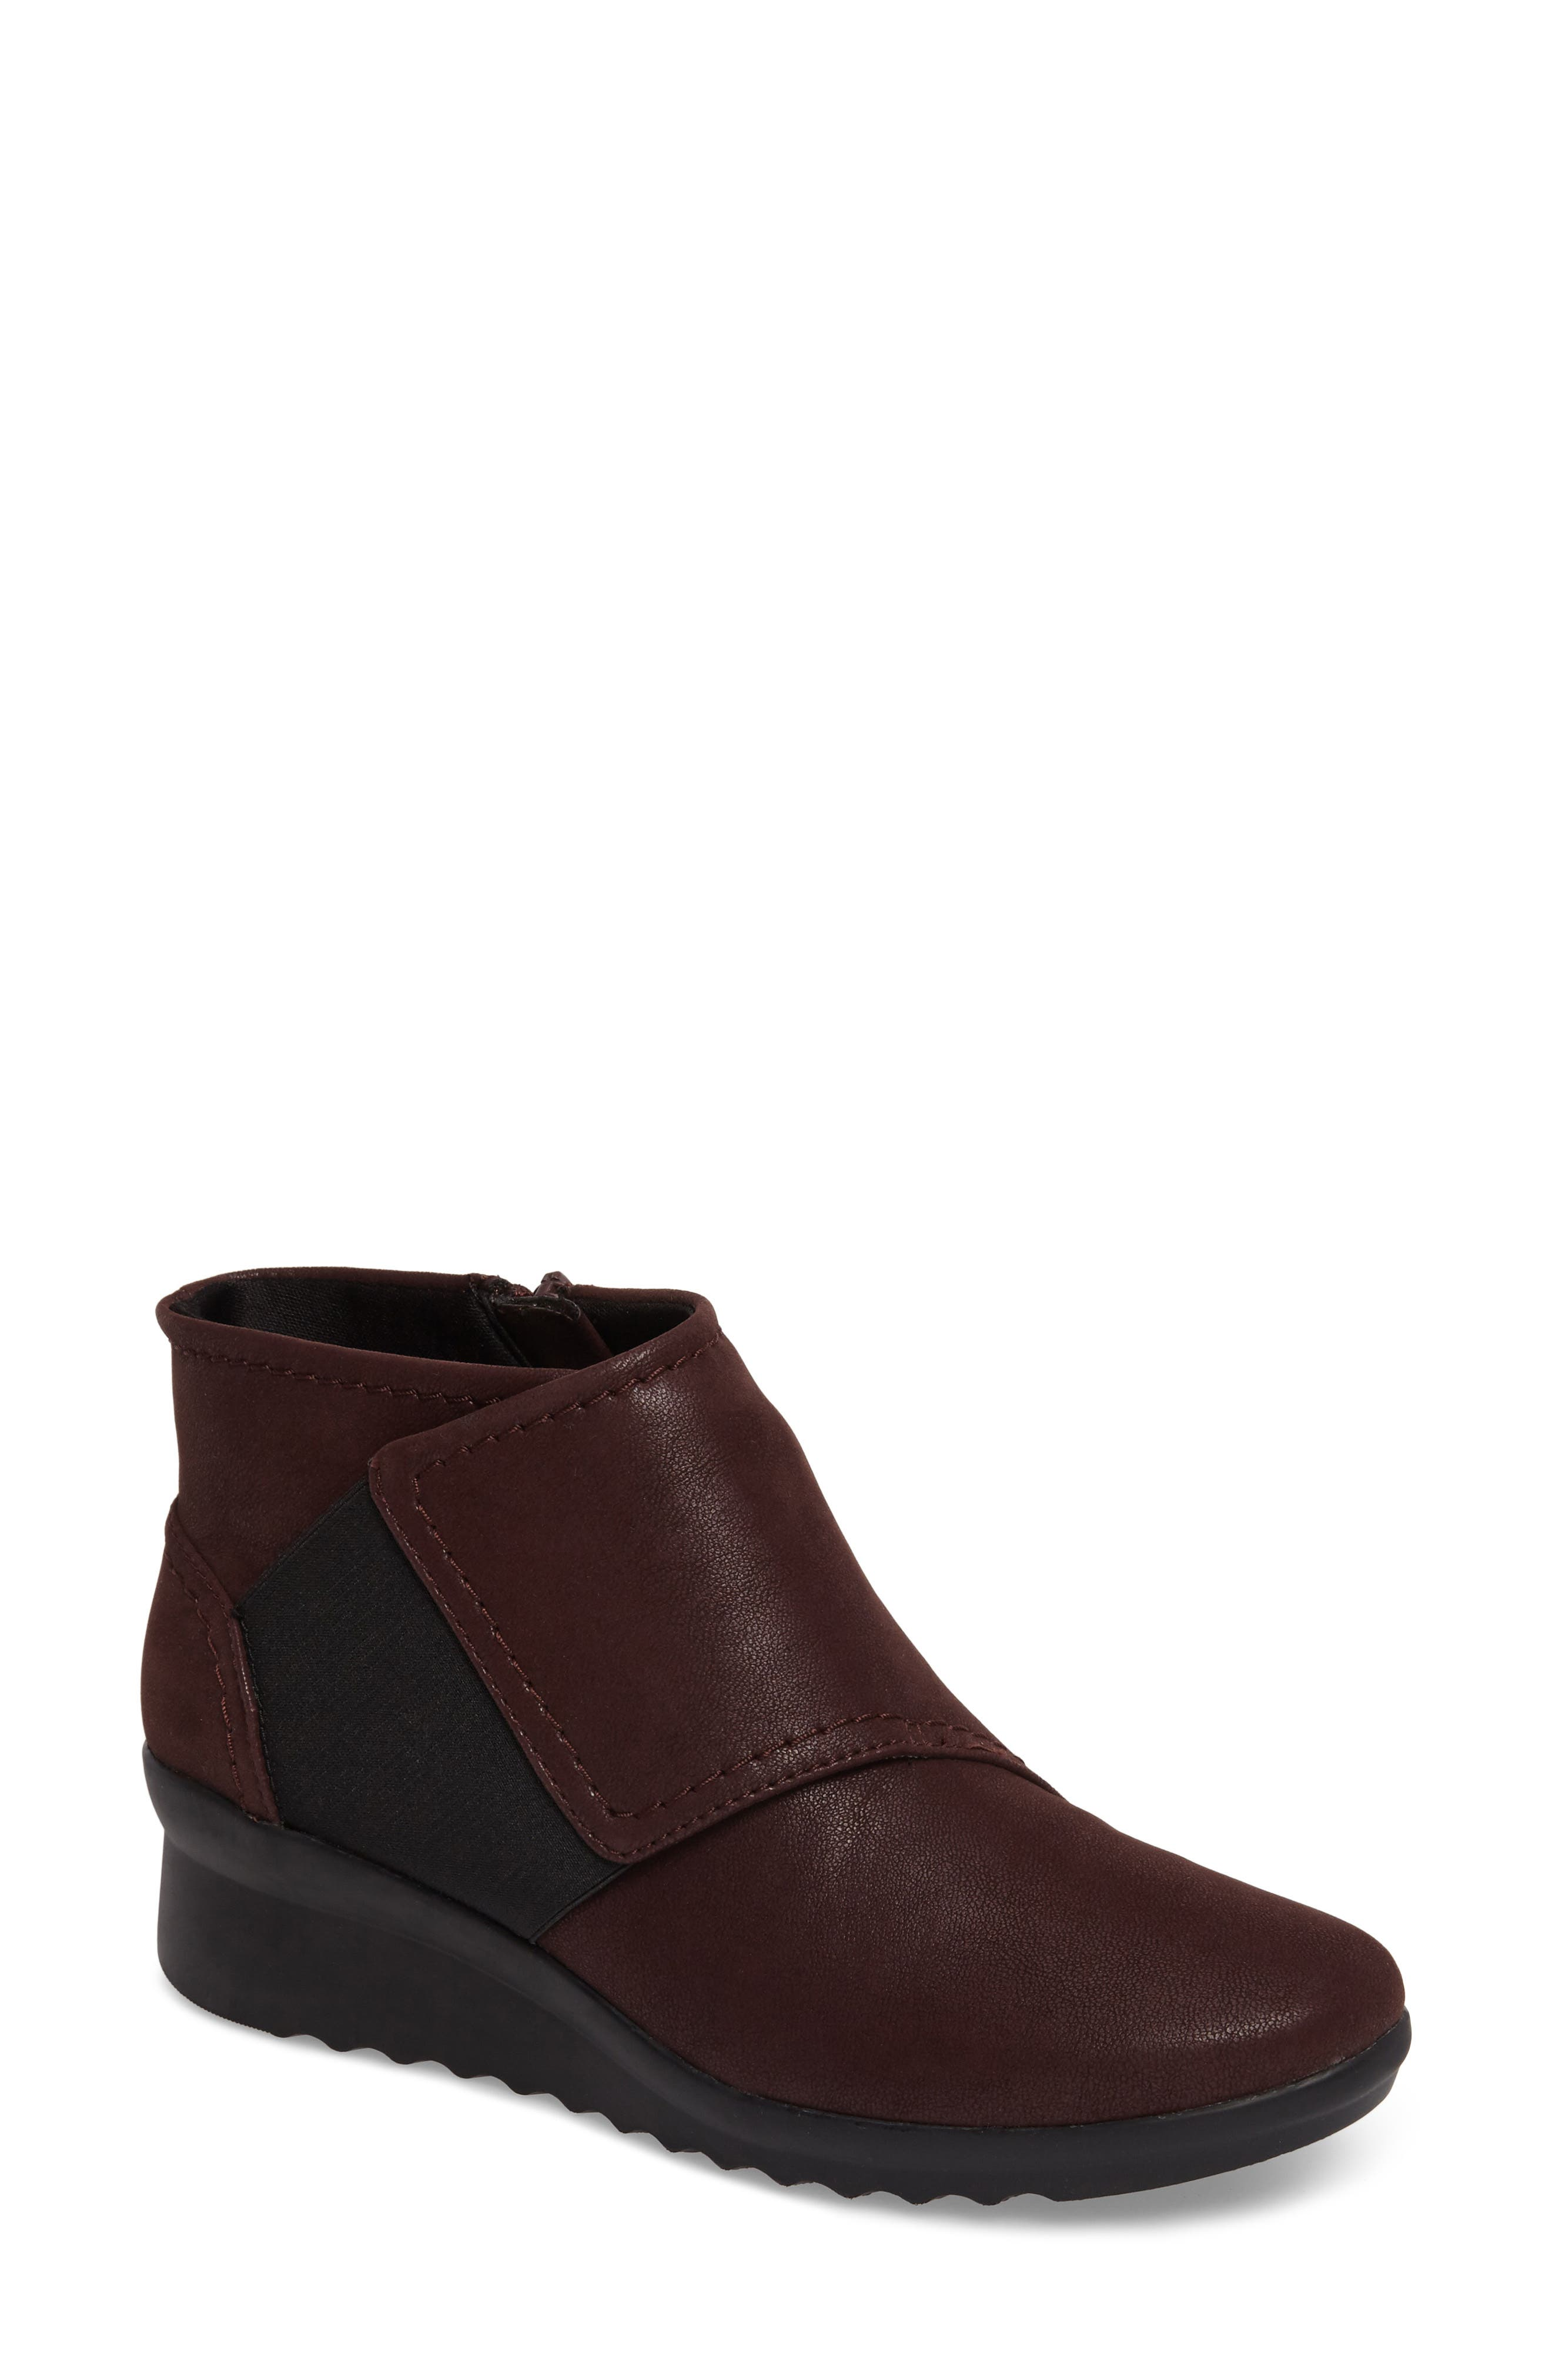 Caddell Rush Bootie,                             Main thumbnail 1, color,                             Burgundy Leather